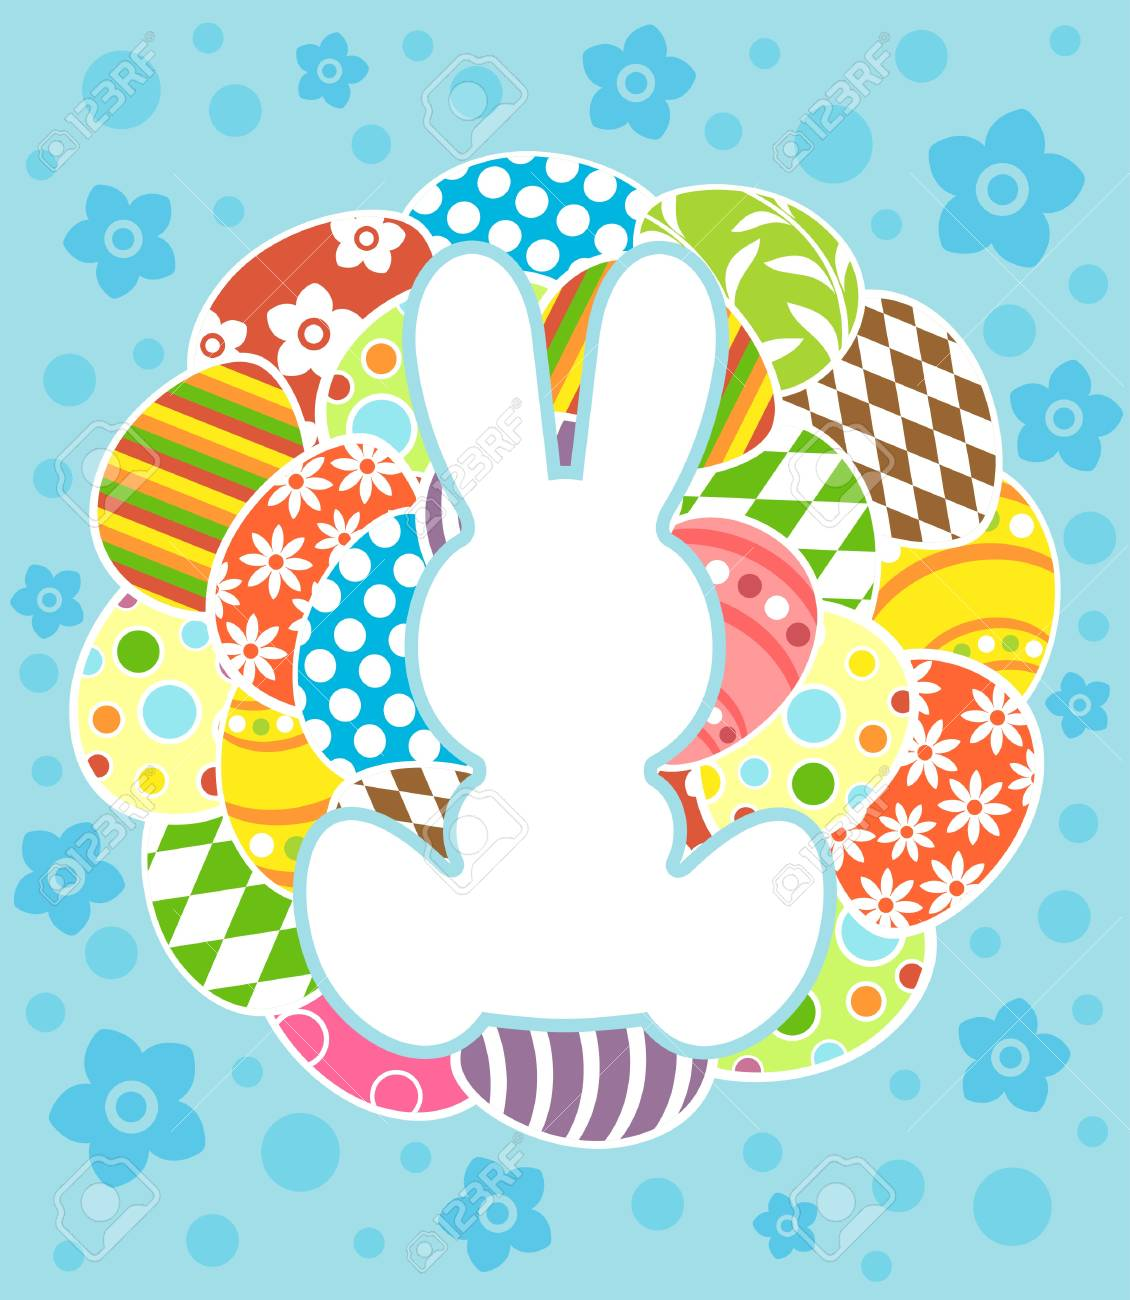 Easter background card vector illustration Stock Vector - 18518575